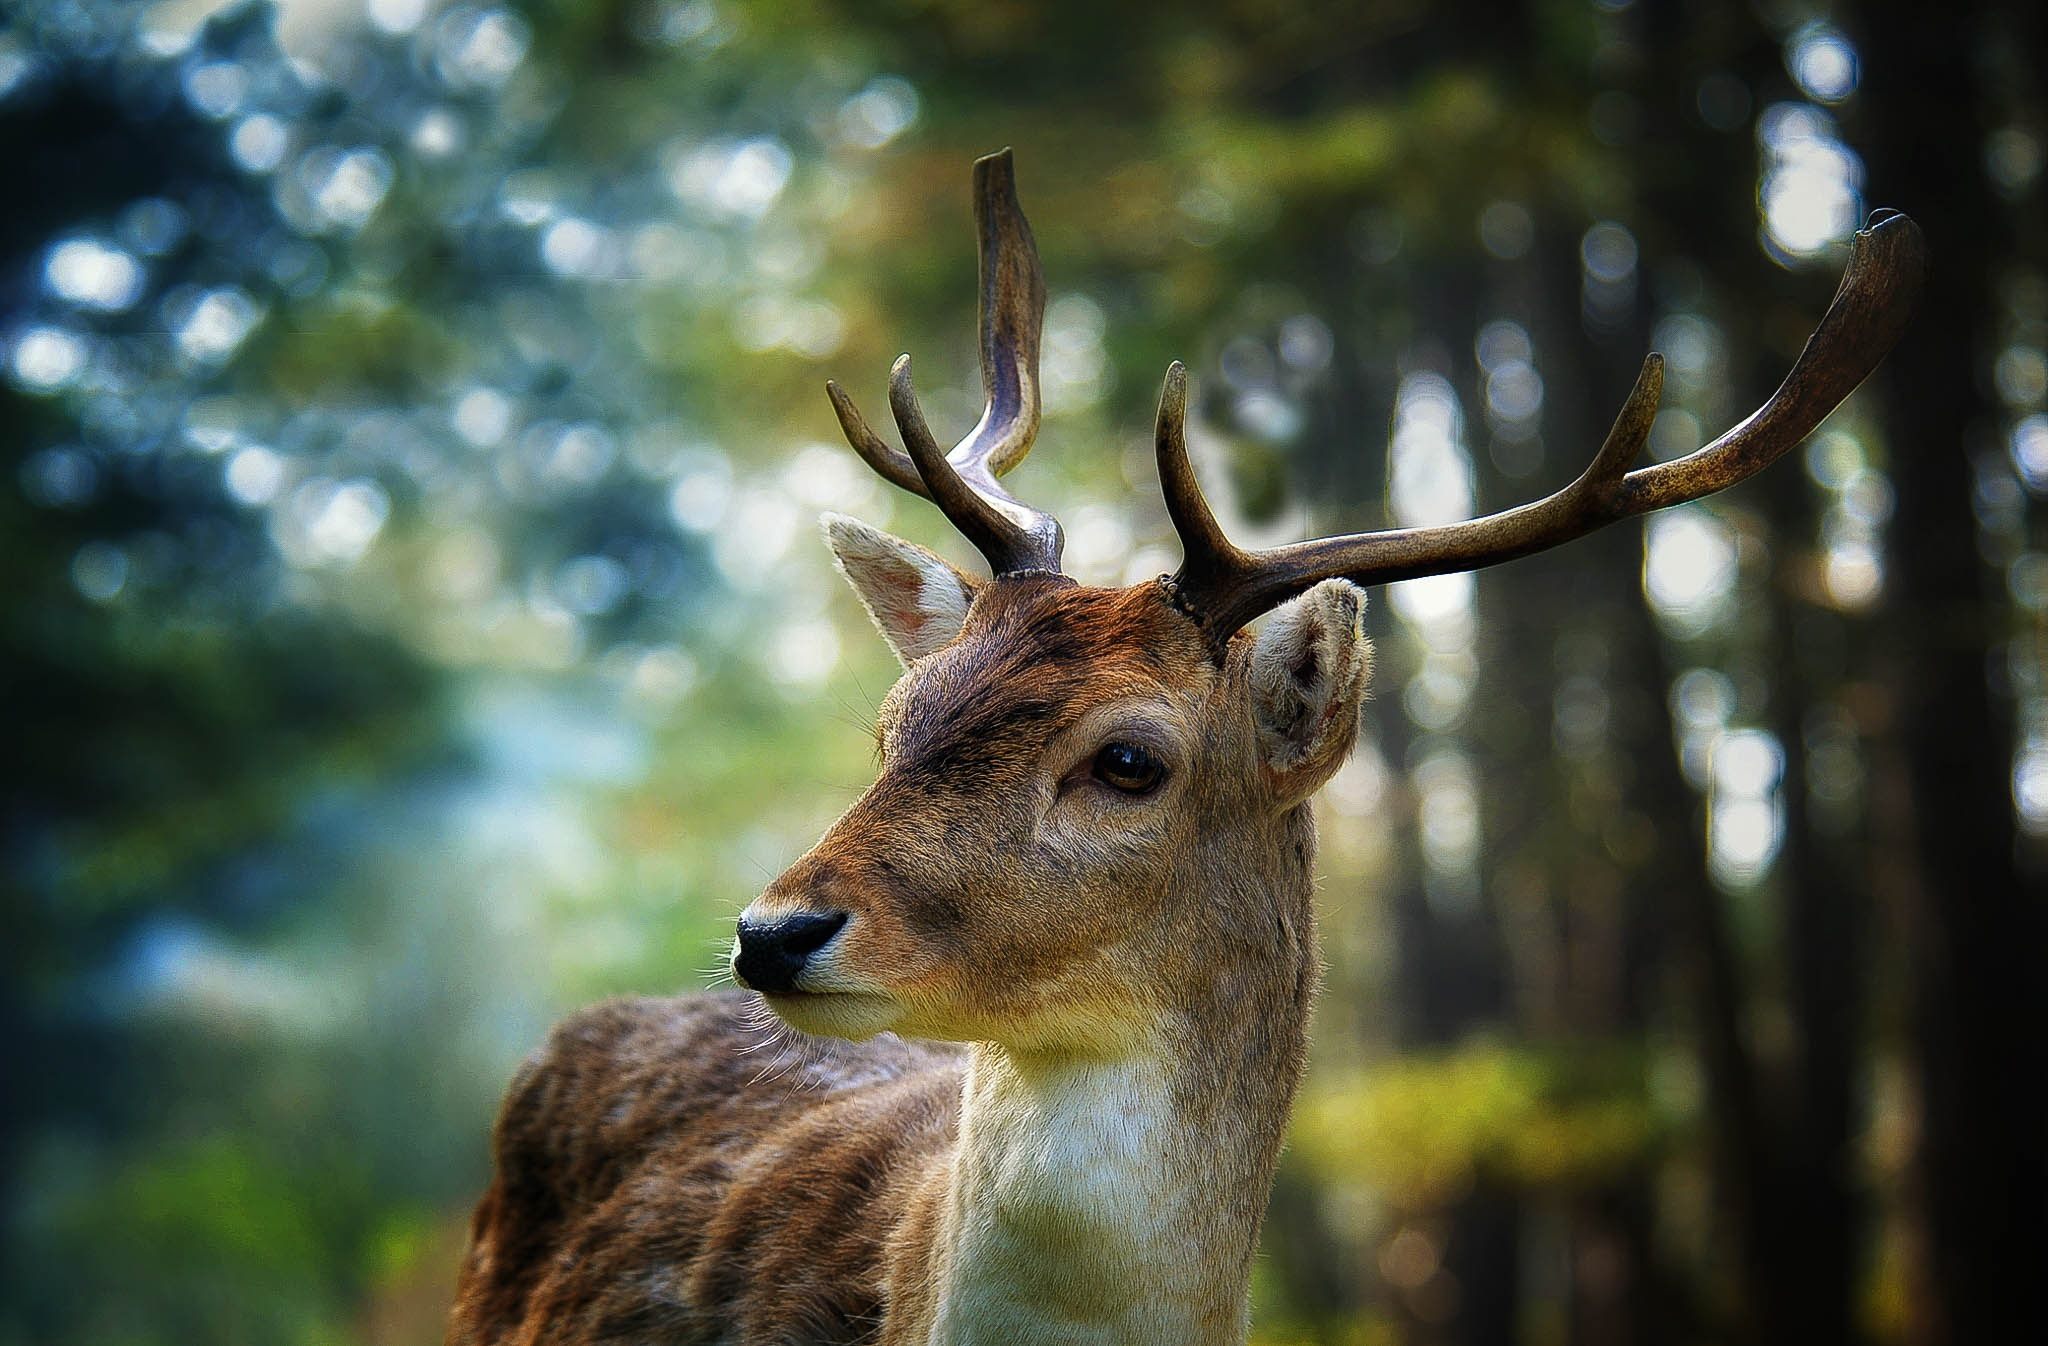 Oh deer by Boukes